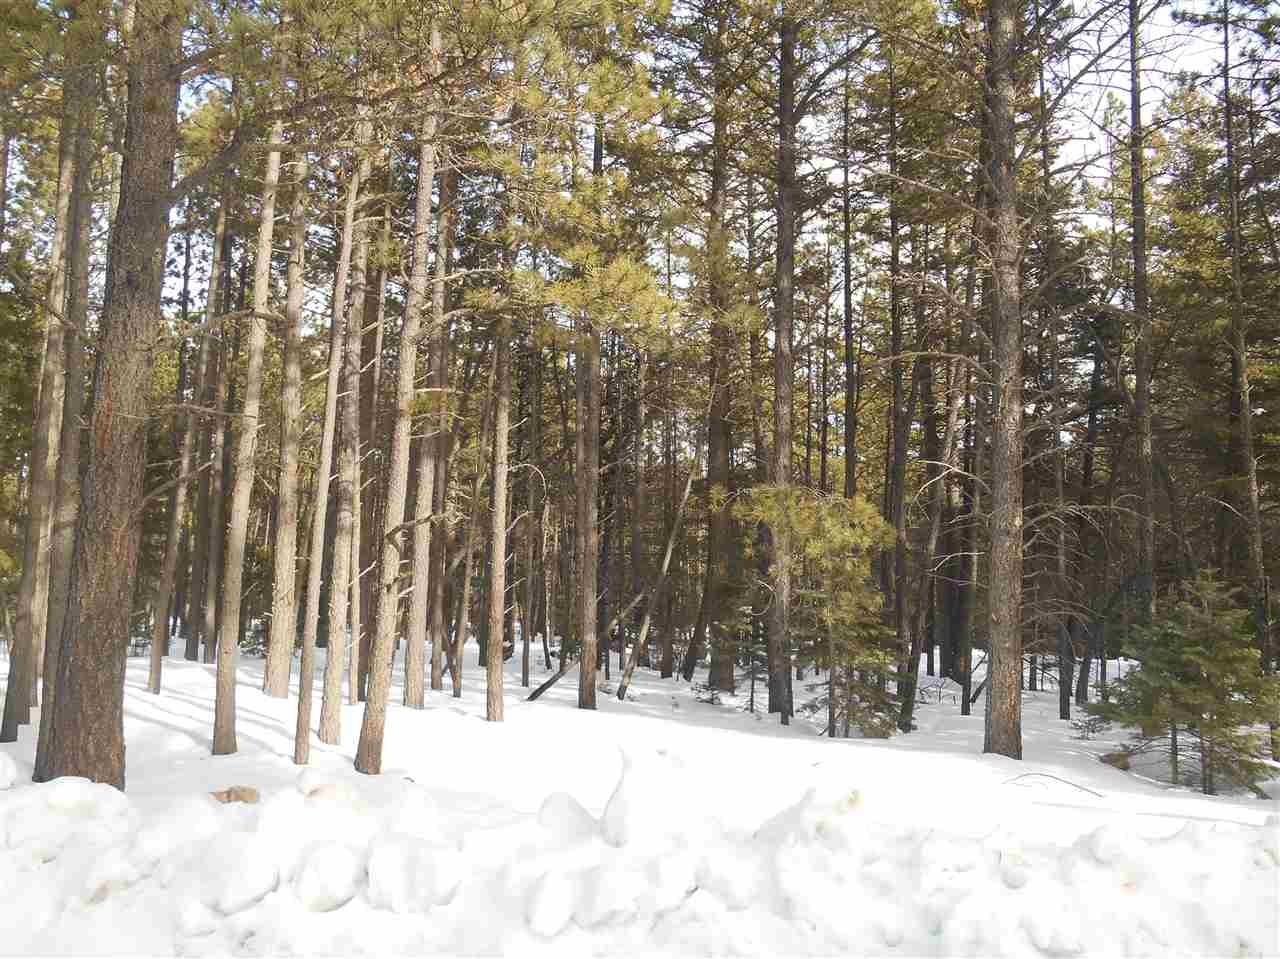 Heavily wooded, 1.175 acre lot, in quiet cul-de-sac with only a couple of houses in cul-de-sac.  Las Cruces Terrance is off of Valle Grande Trail, a paved road leading to center of Angel Fire Village.  Easy year-round access to all amenities of Resort and Village.